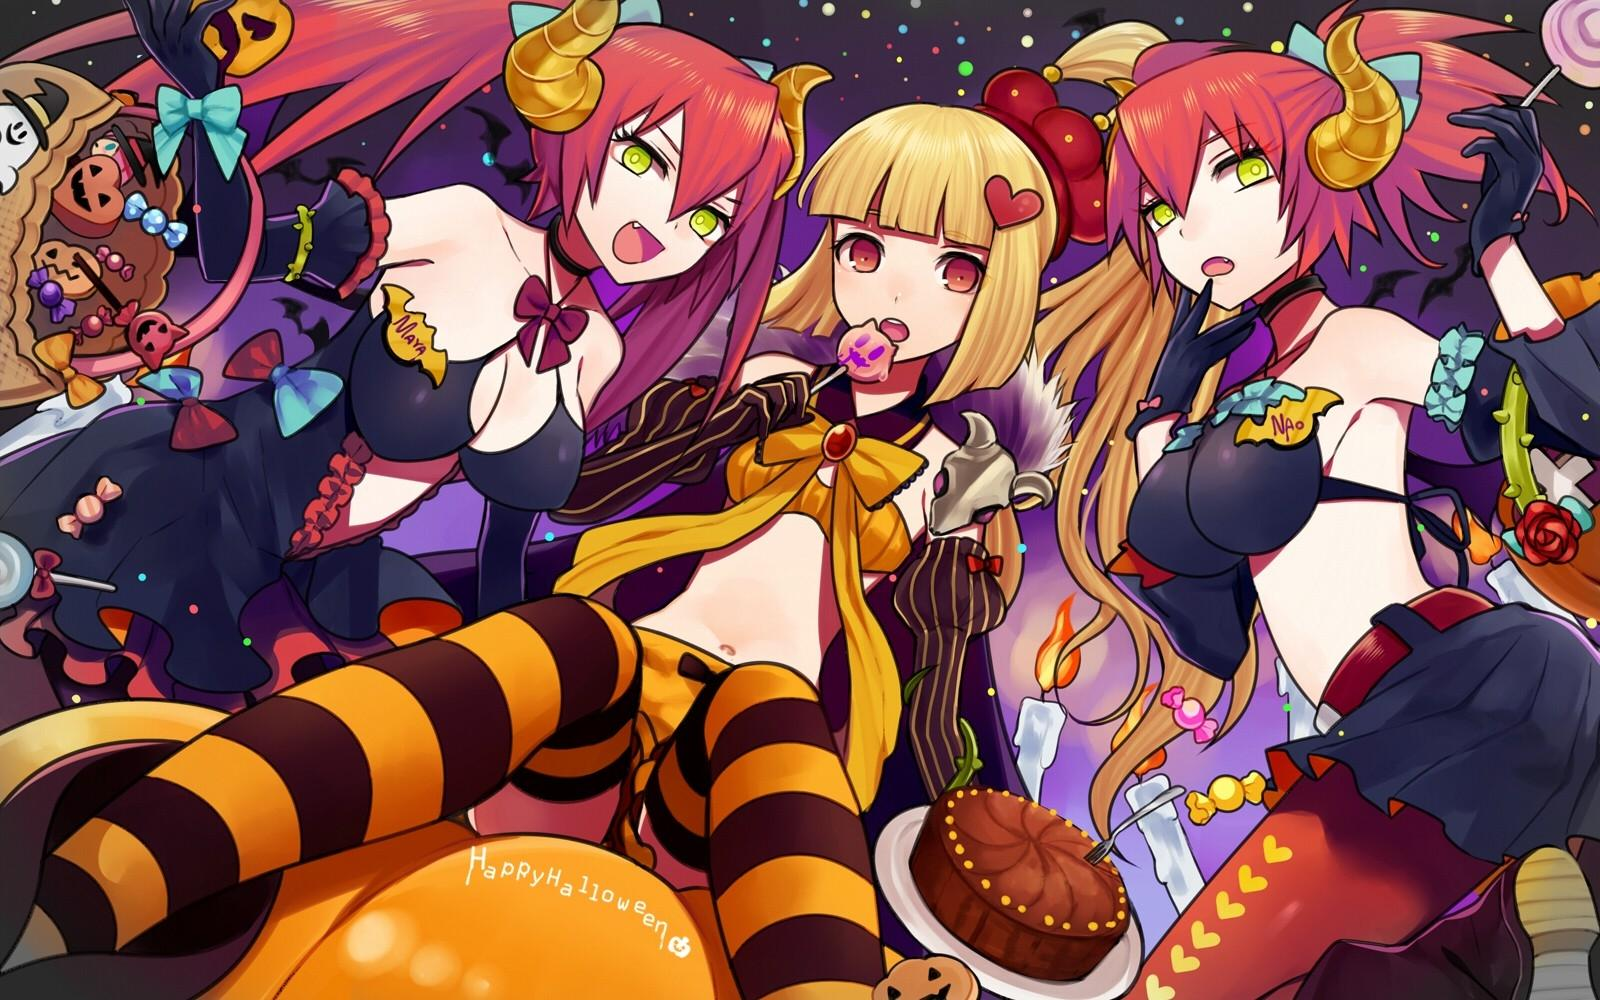 blondes halloween candy cleavage skirts horns red eyes short